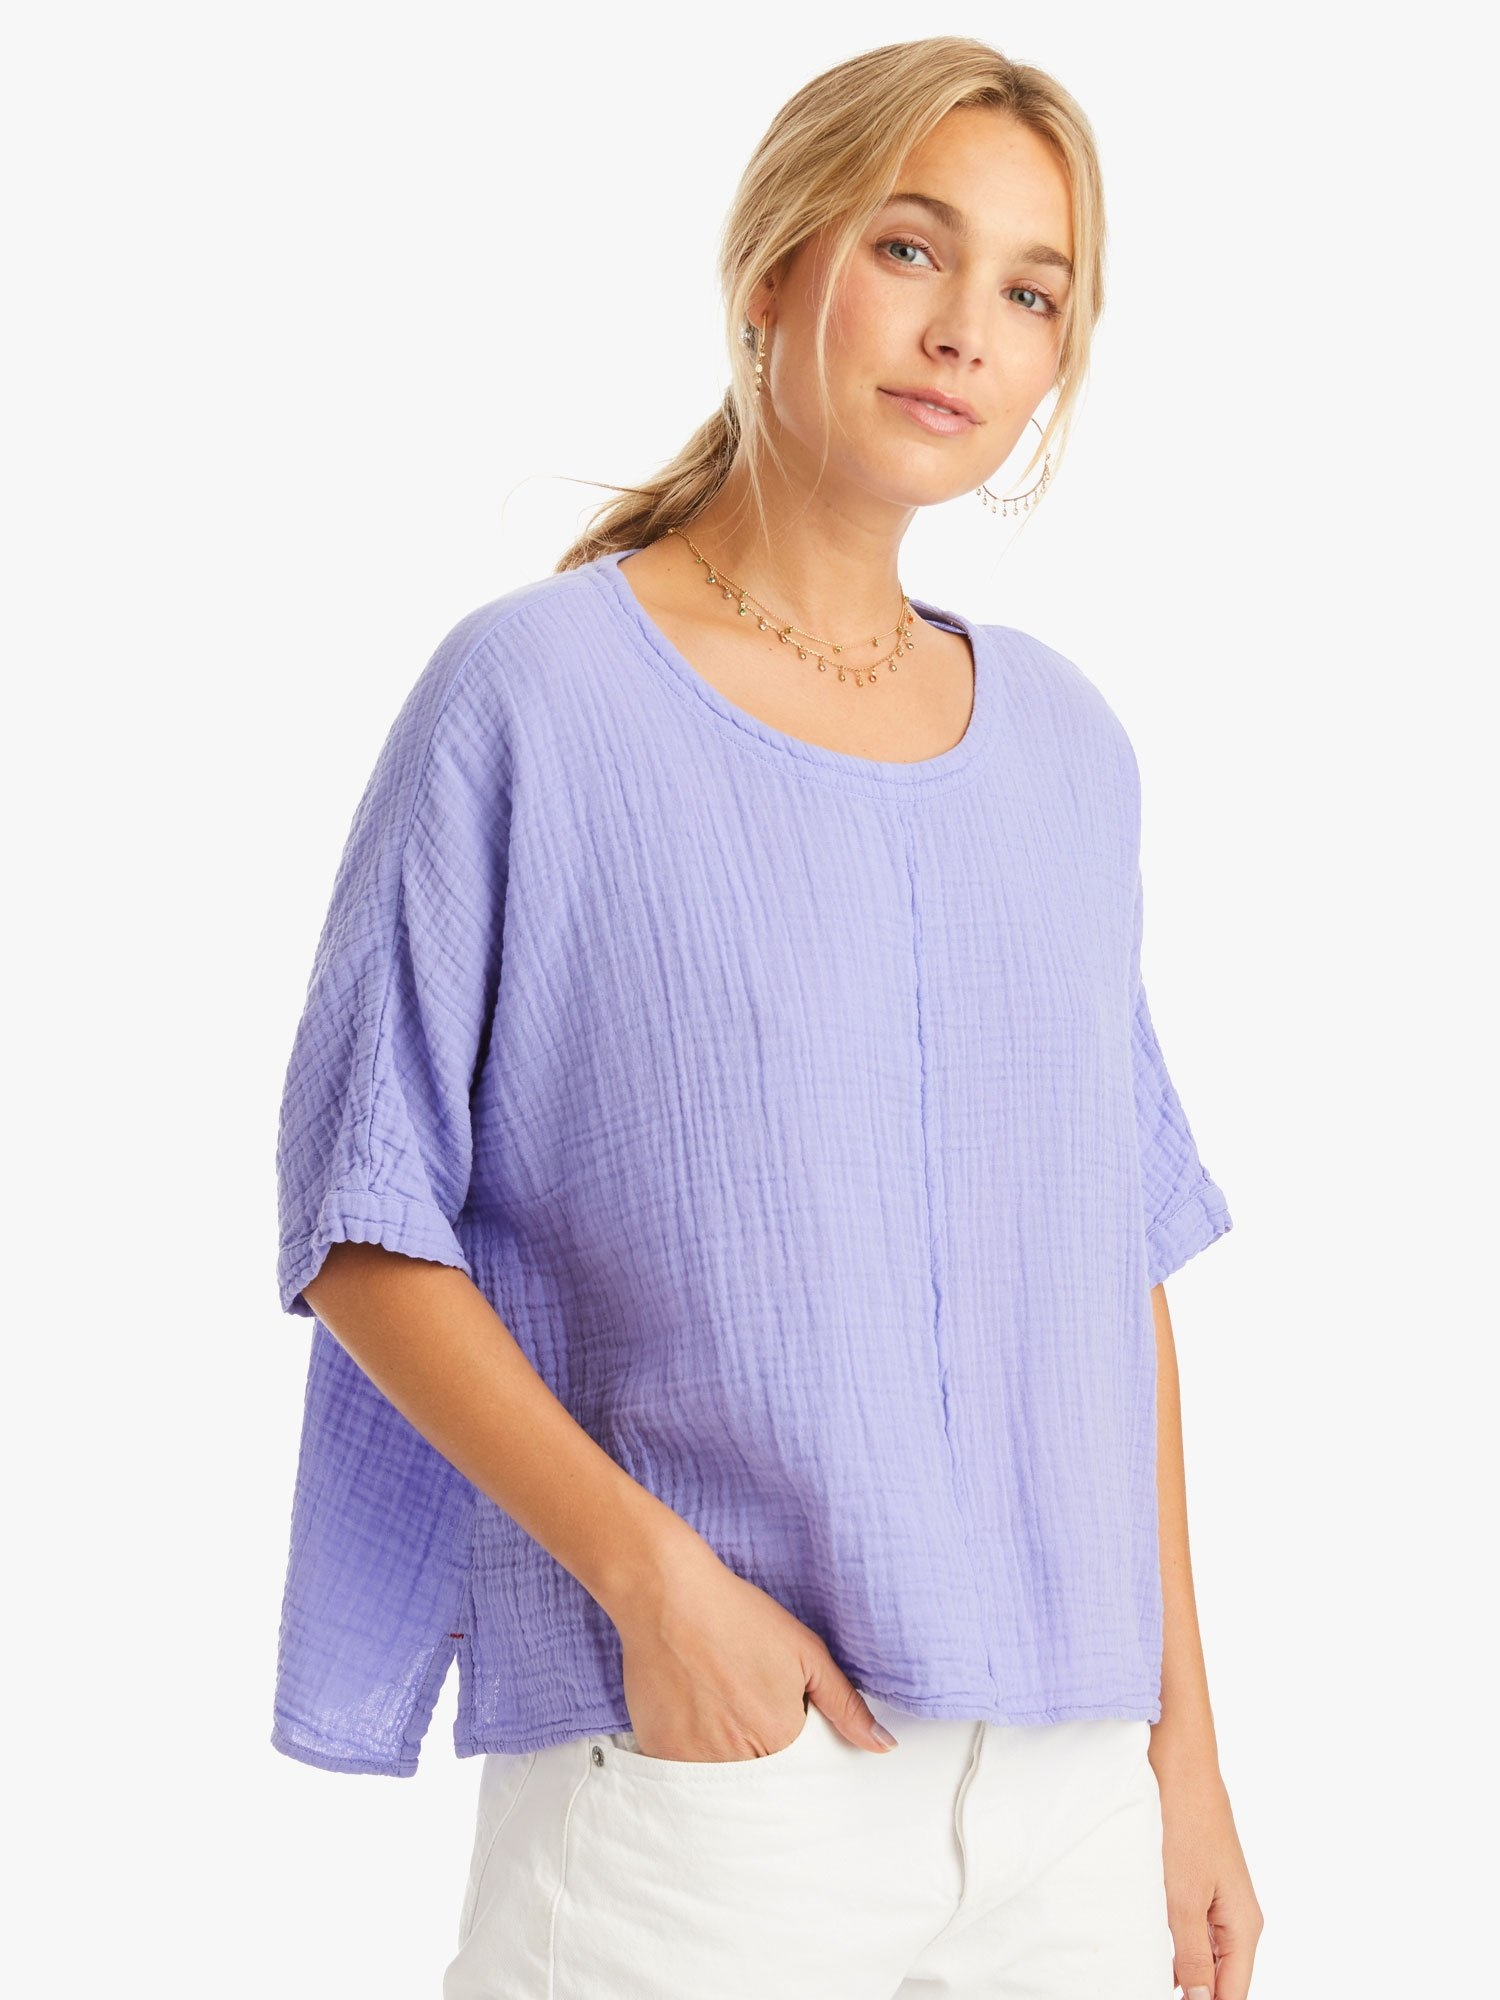 Xirena Xirena Landon Cotton Gauze Top